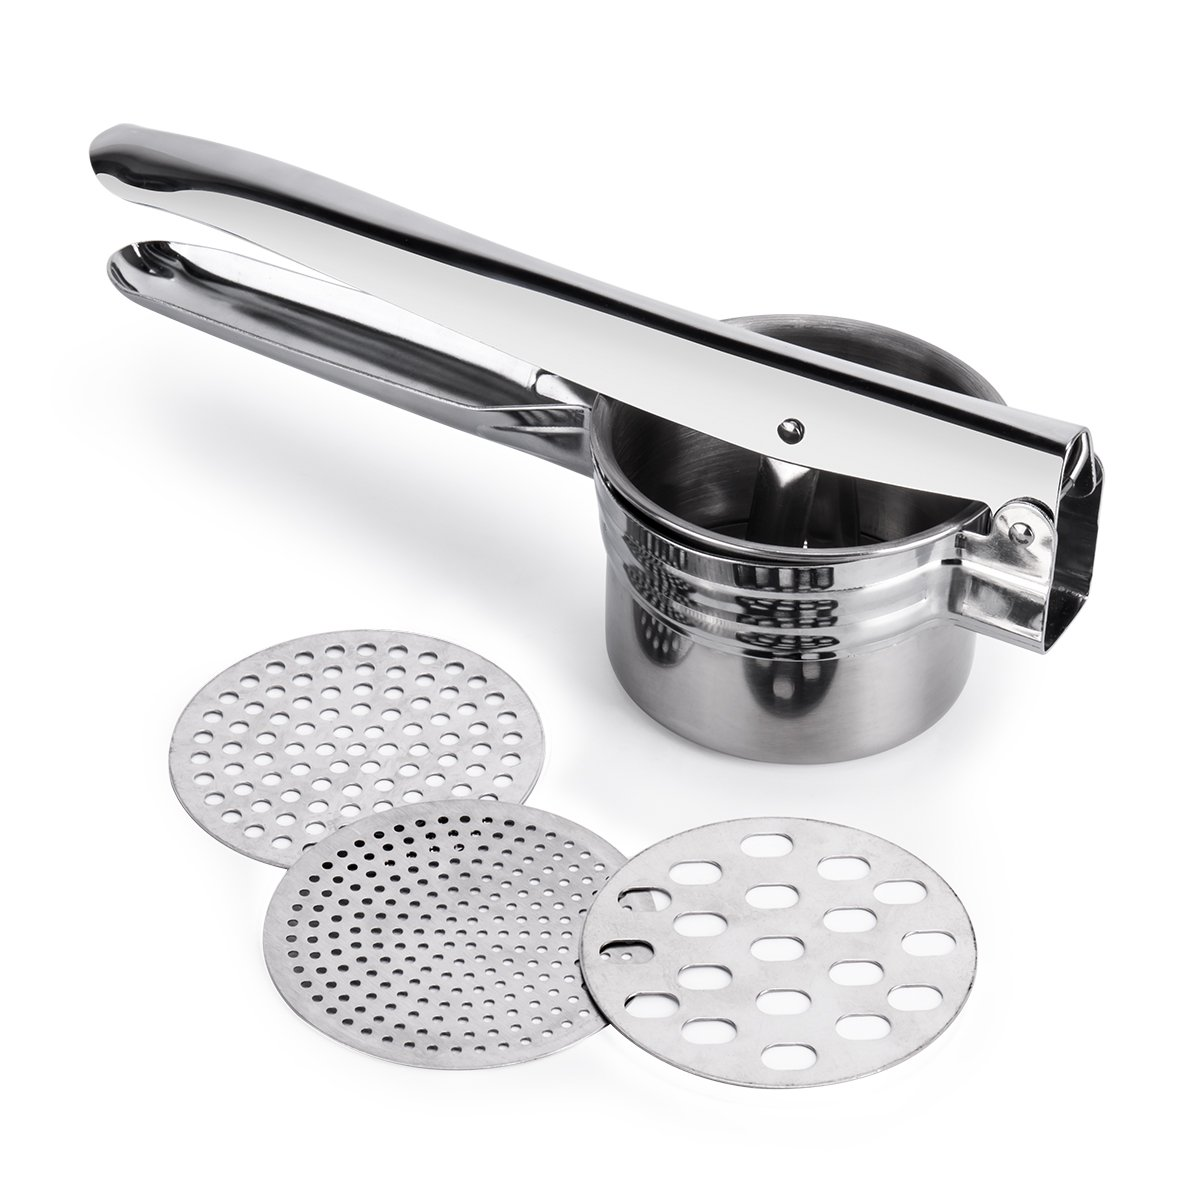 Potato Ricer and Masher, BeautyKitchen Stainless Steel Potato Ricer with 3 Interchangeable Disks Premium Stainless Steel Baby Food Strainer, Fruit Masher, and Food Press with Ergonomic Comfort Grip